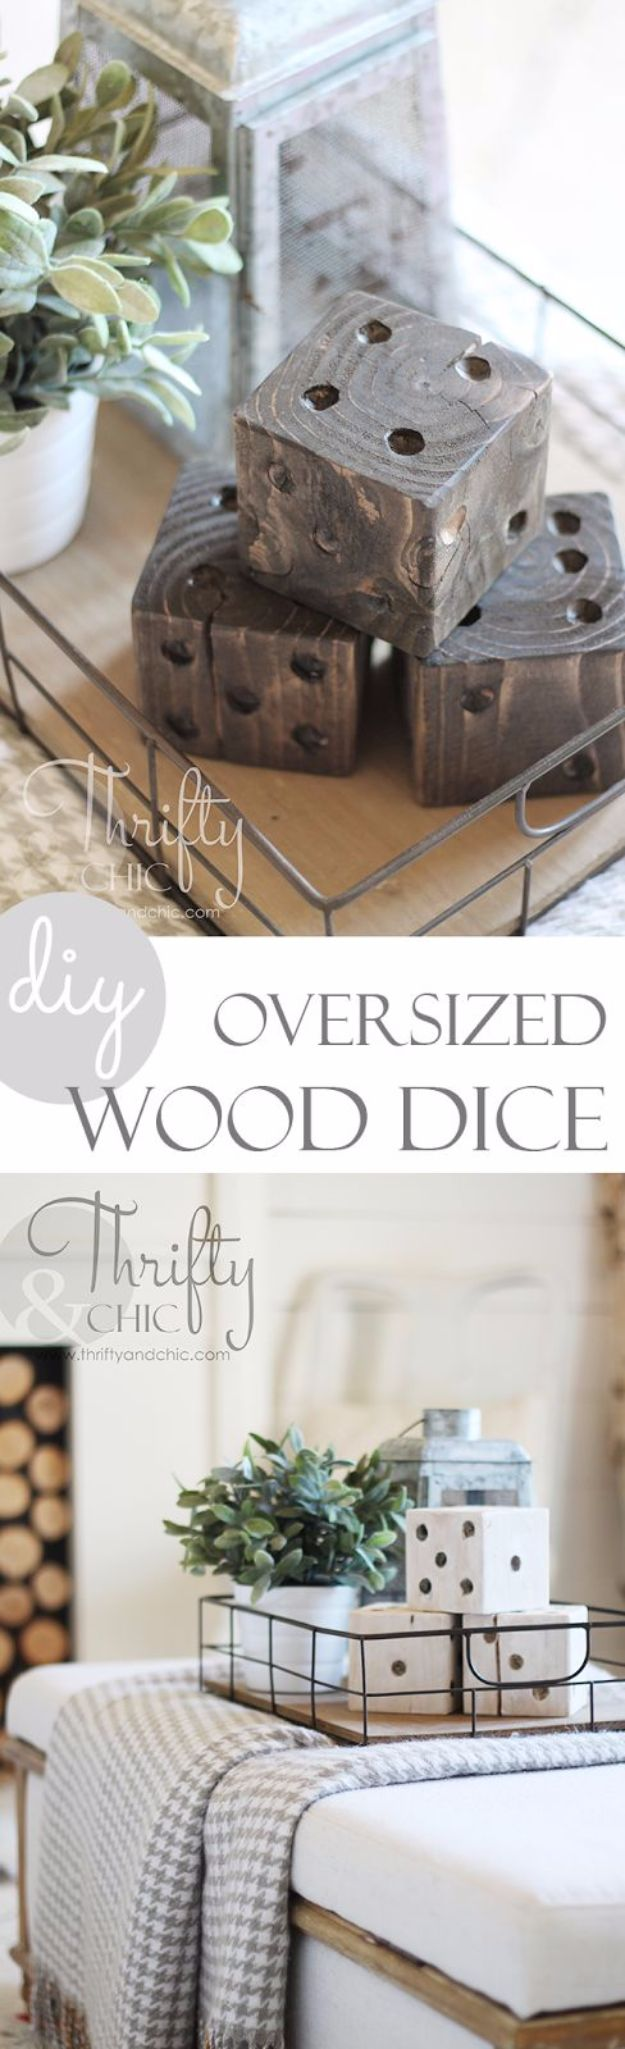 Farmhouse Decor to Make And Sell - DIY Oversized Wood Dice - Easy DIY Home Decor and Rustic Craft Ideas - Step by Step Country Crafts, Farmhouse Decor To Make and Sell on Etsy and at Craft Fairs - Tutorials and Instructions for Creative Ways to Make Money - Best Vintage Farmhouse DIY For Living Room, Bedroom, Walls and Gifts #diydecor